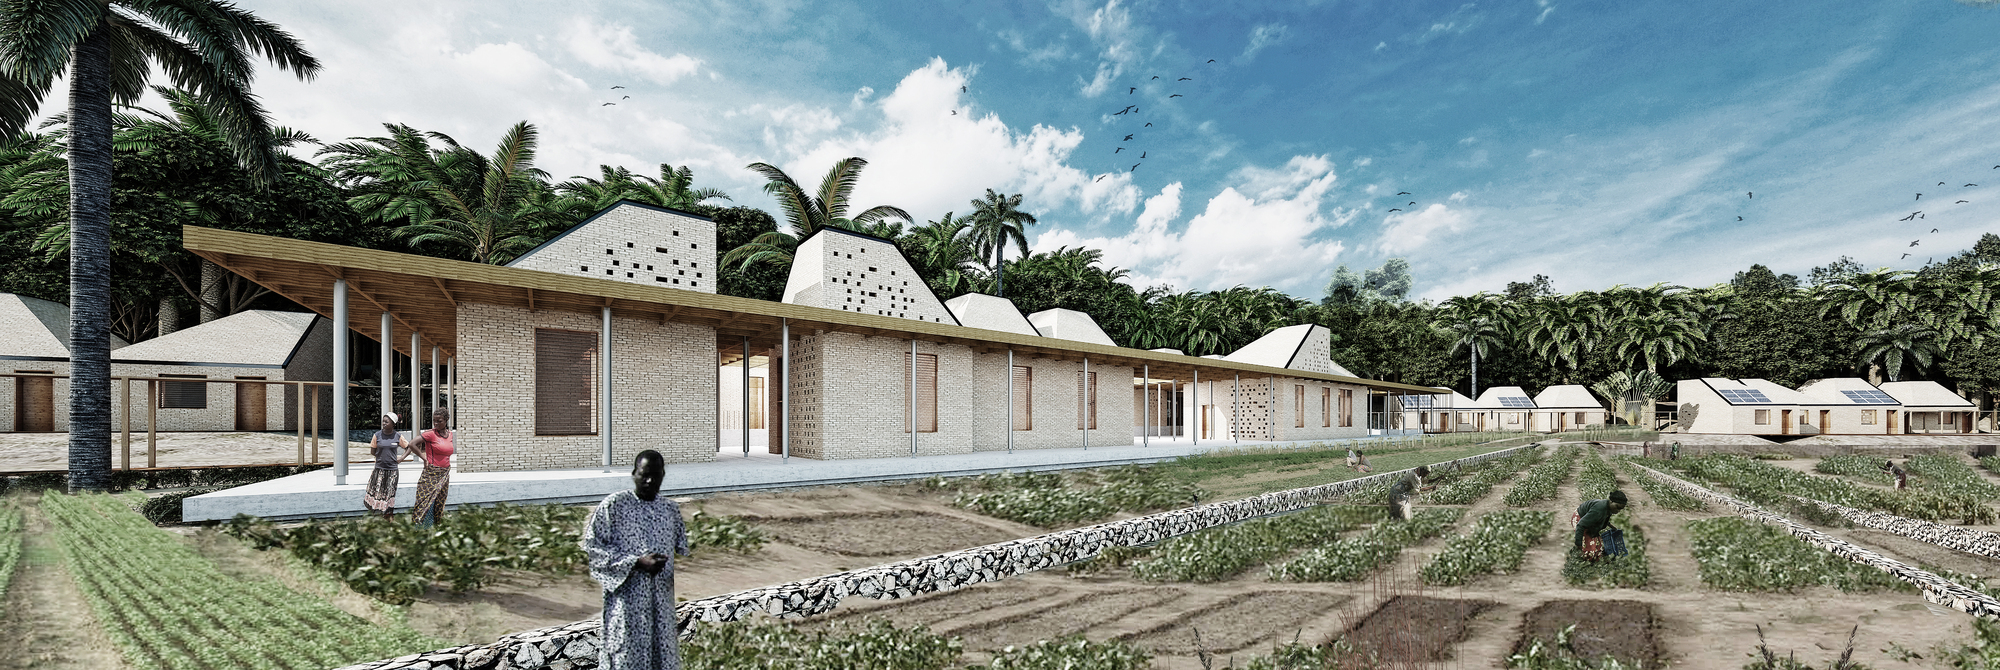 Architecture from Tanzania | ArchDaily